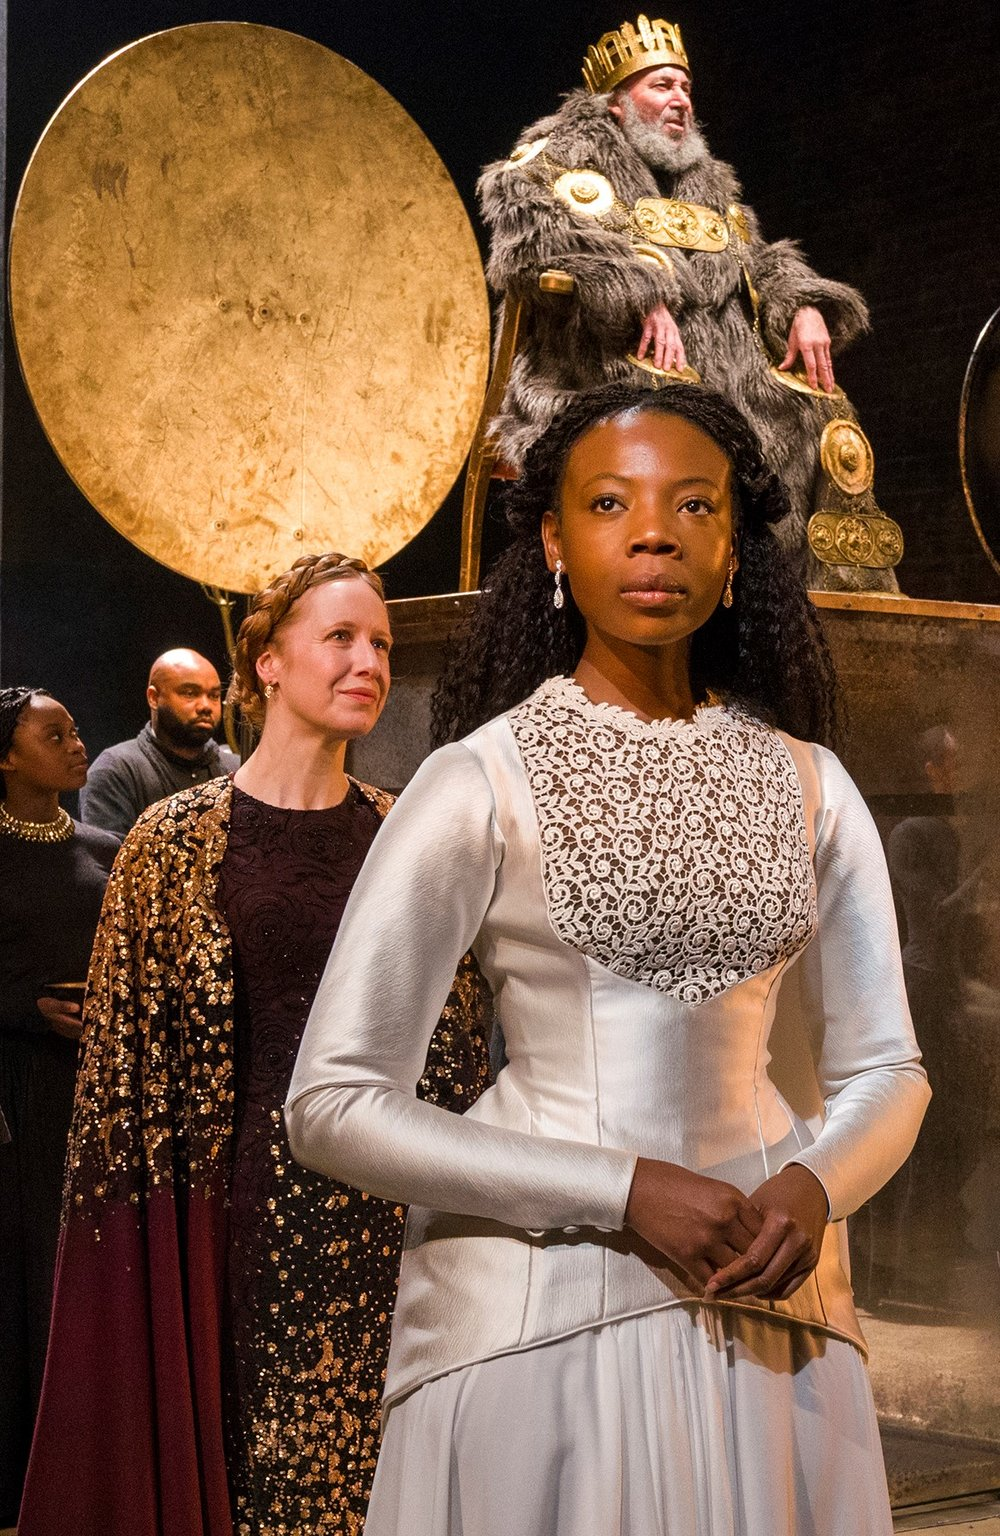 Goneril and Lear with Mimi Ndiweni as Cordelia (center). Photographs by Richard Termine.